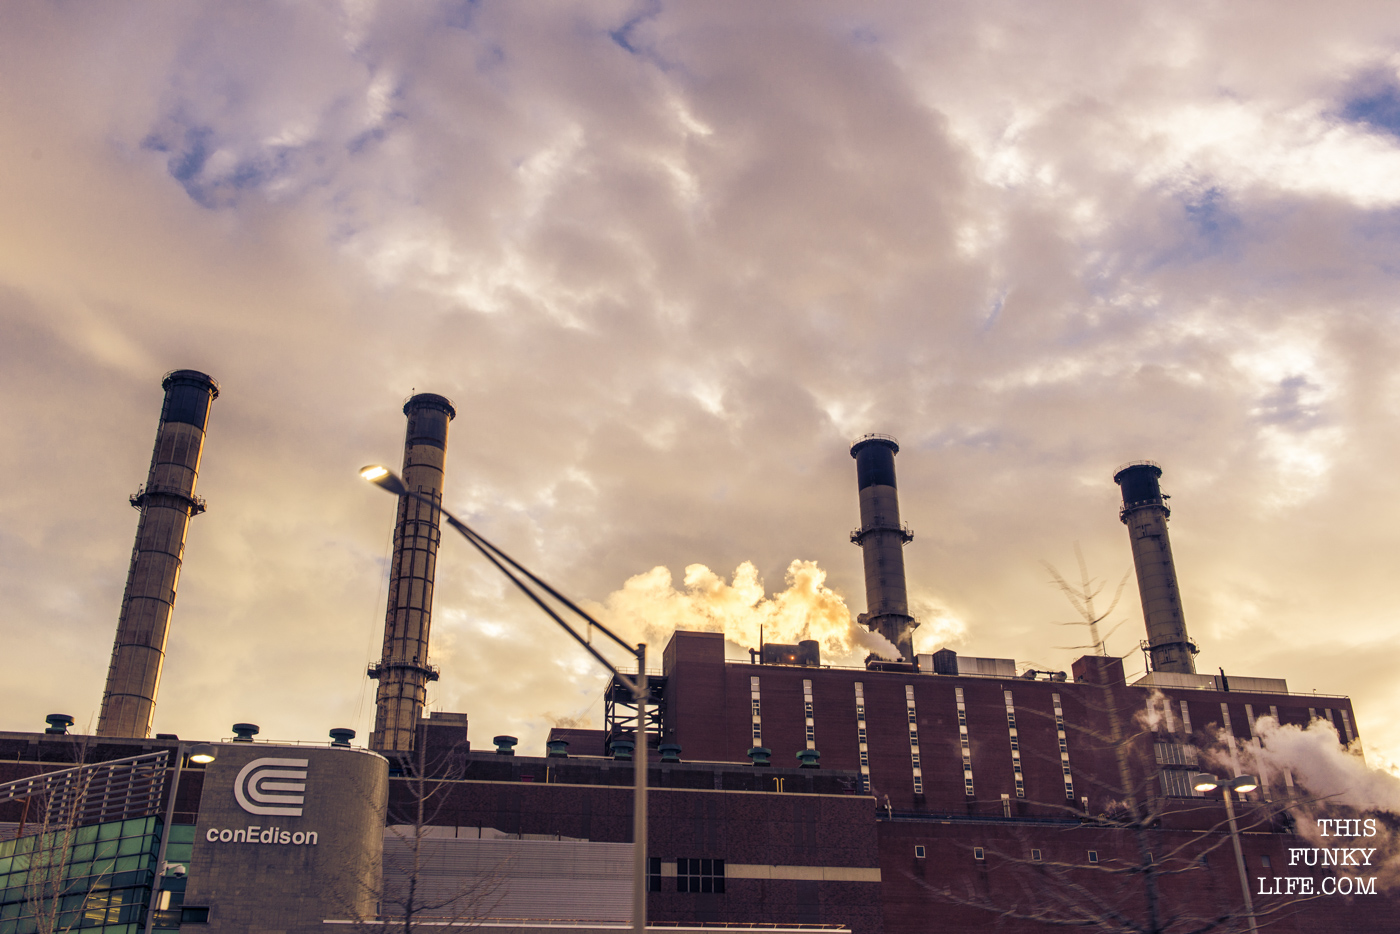 Con Edison power plant working nonstop for the city that never sleeps